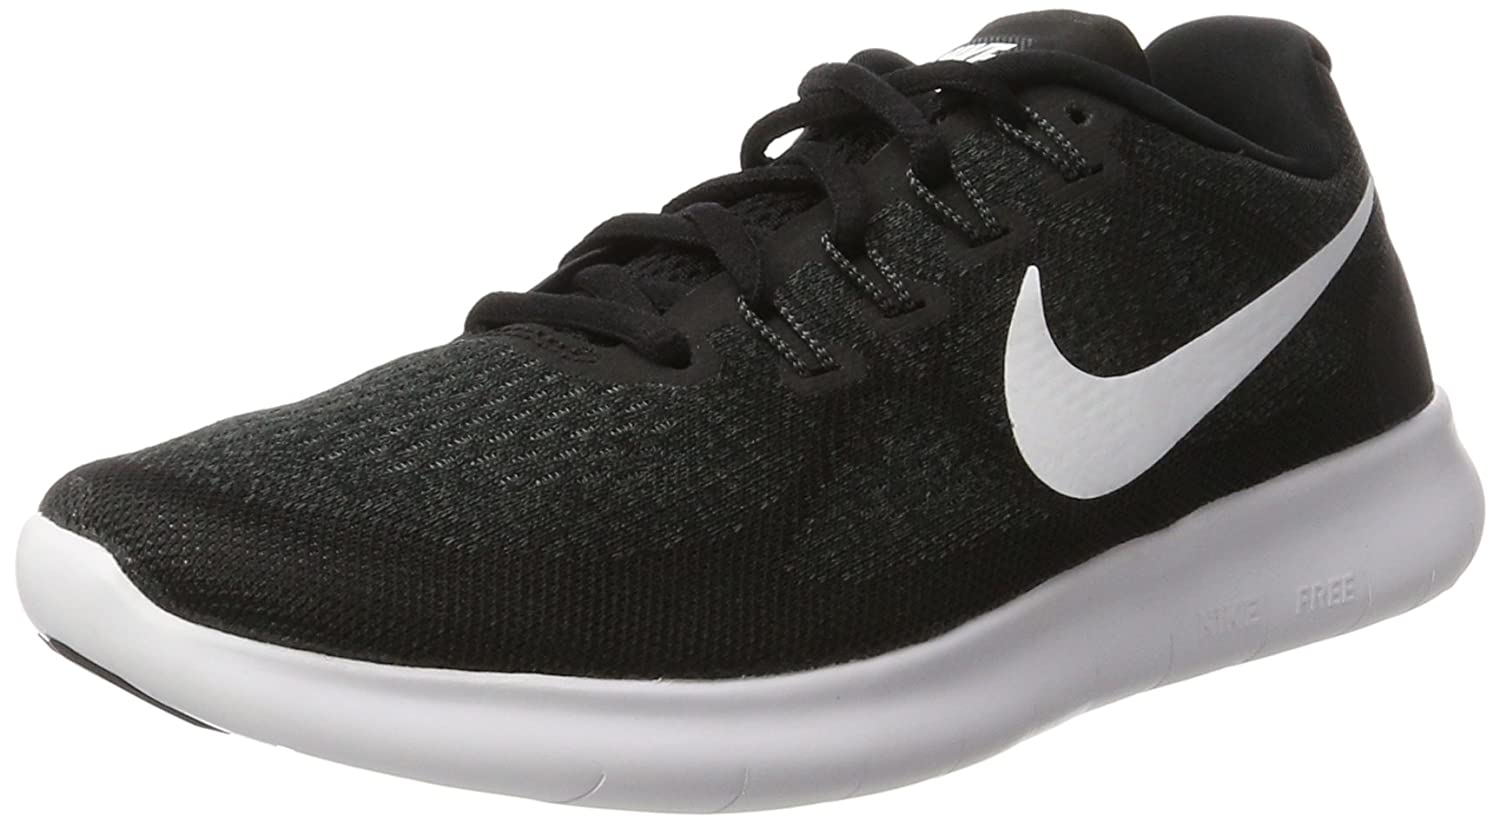 hot sale online de96c c0d37 NIKE Men's Free RN Running Shoe